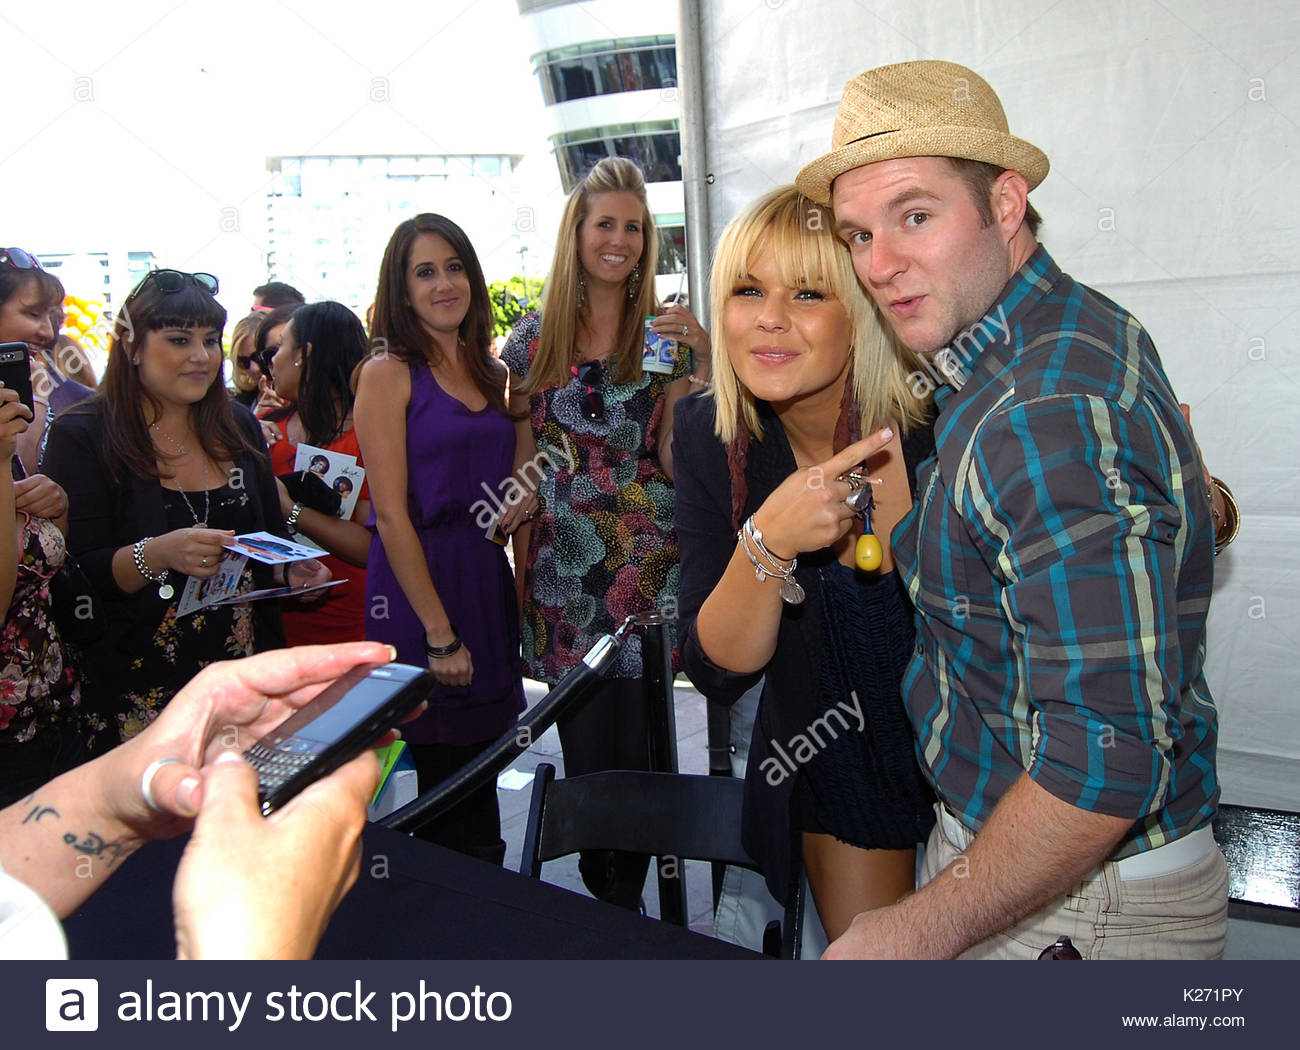 Kimberly caldwell and blake lewis former american idol performers former american idol performers meet and greet fans outside for autographs and photos at la live next to the staples center in los angeles california m4hsunfo